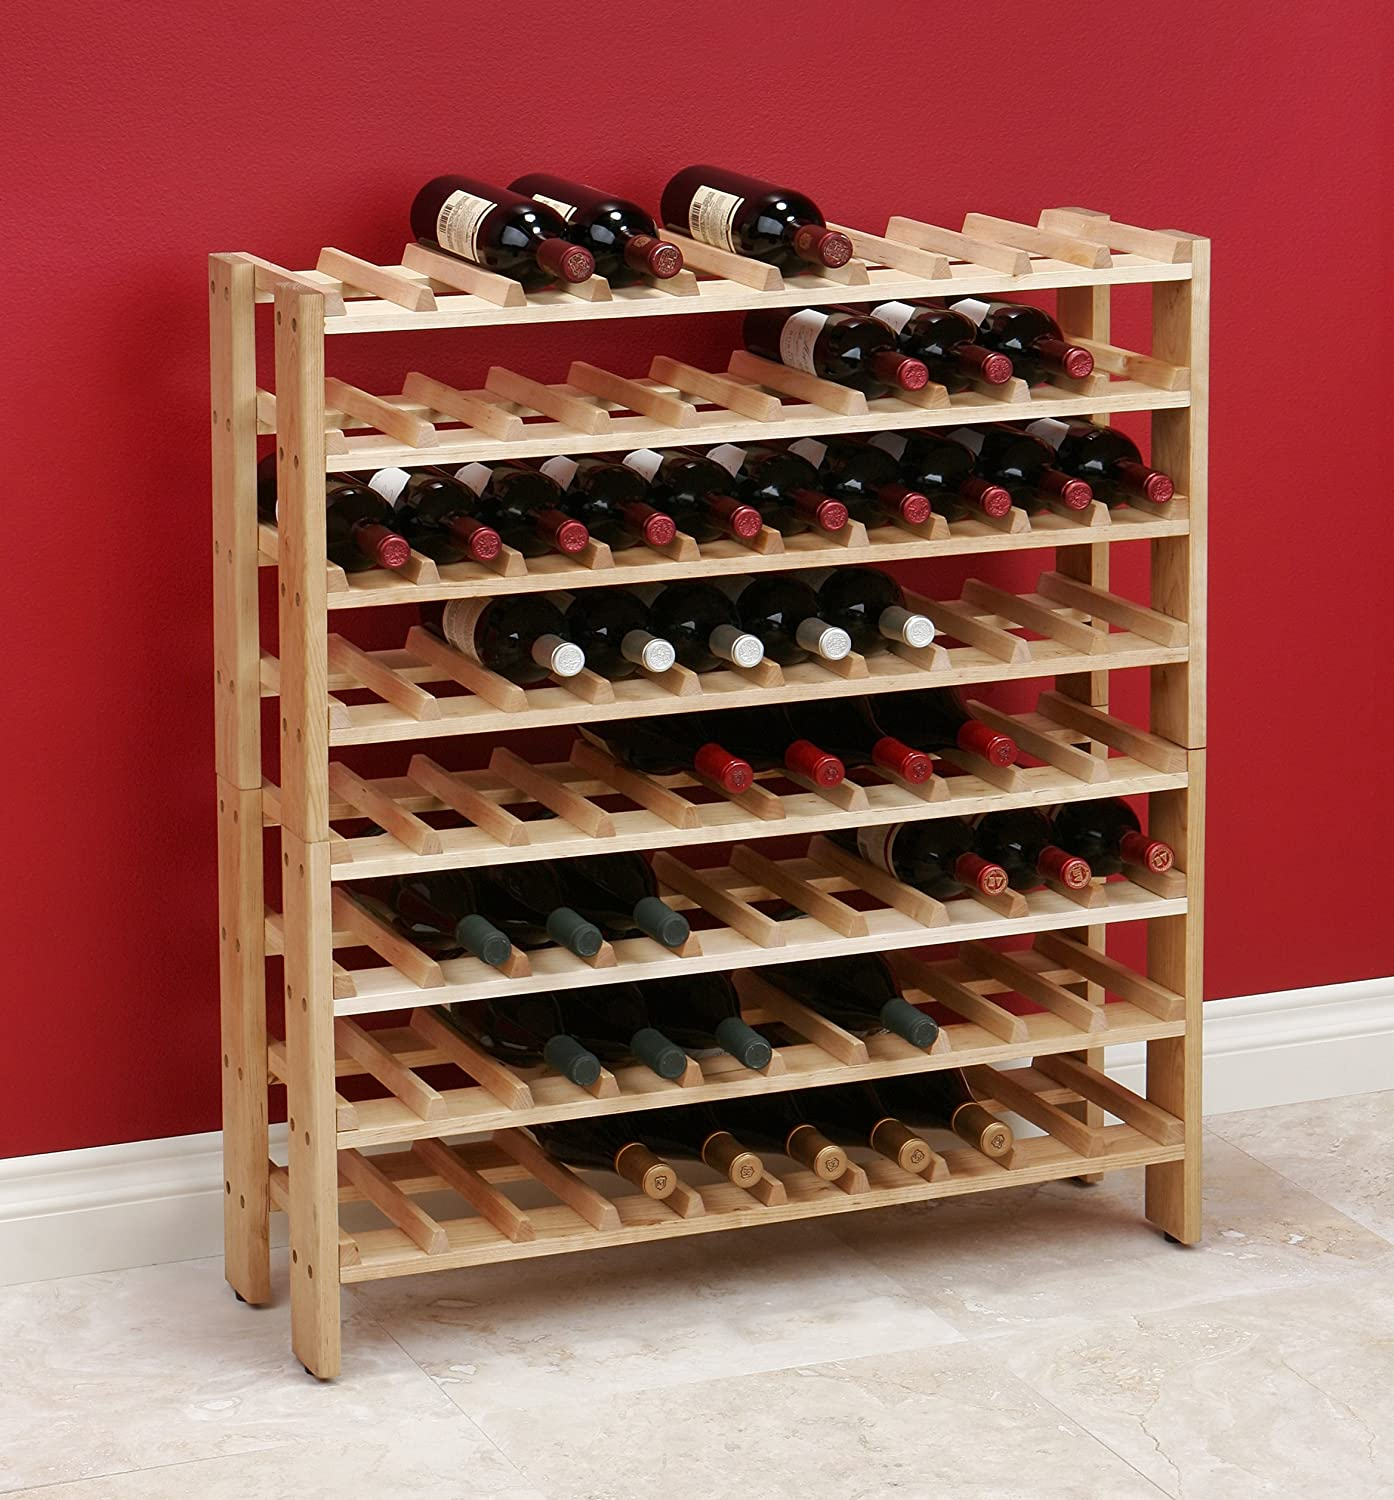 Classics wooden wine racks plans furniture holder 40 Wine rack designs wood